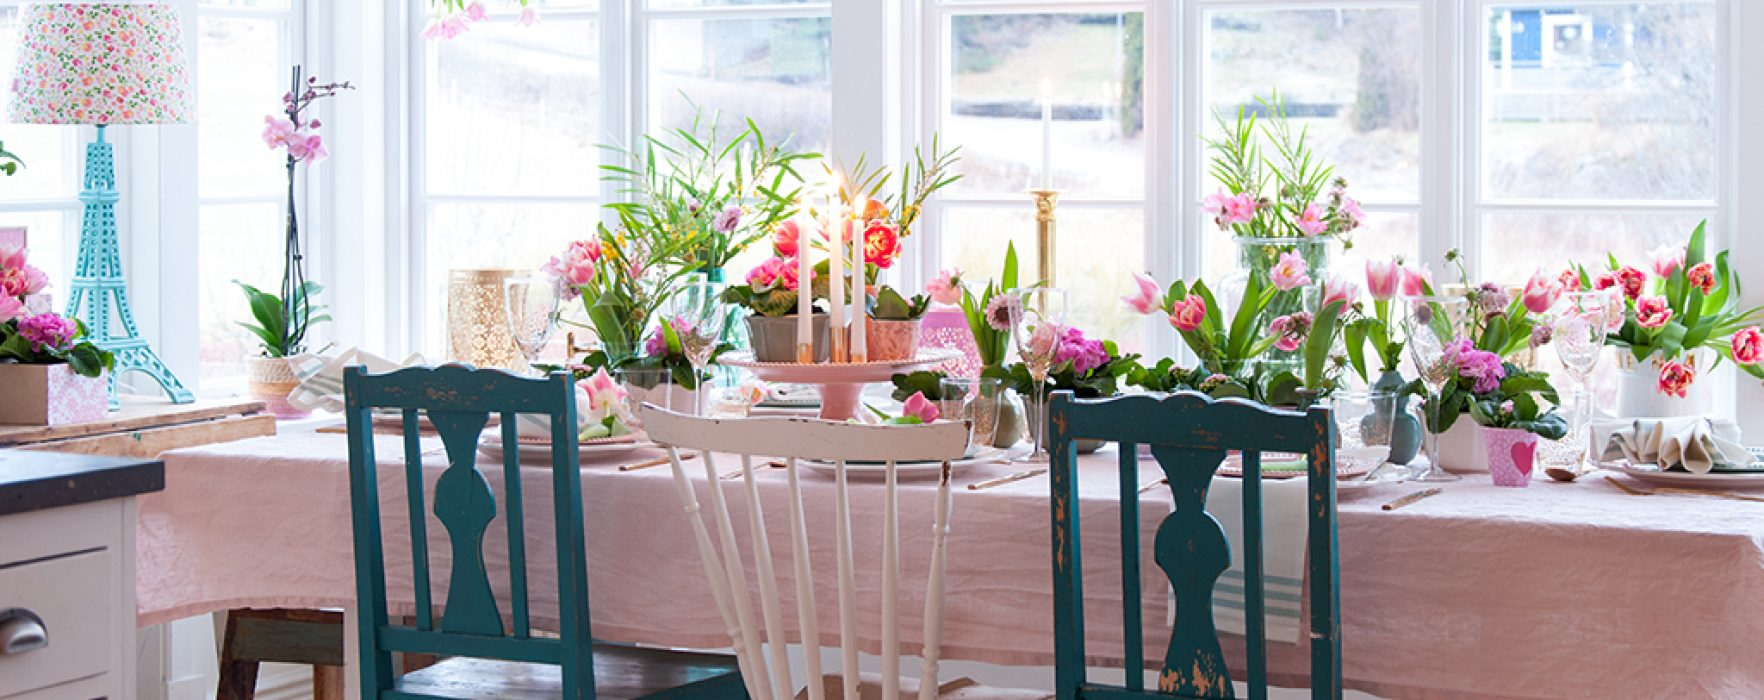 6 Ideas for a Sensational Easter Table Setting & 6 Ideas for a Sensational Easter Table Setting | Better Homes and ...